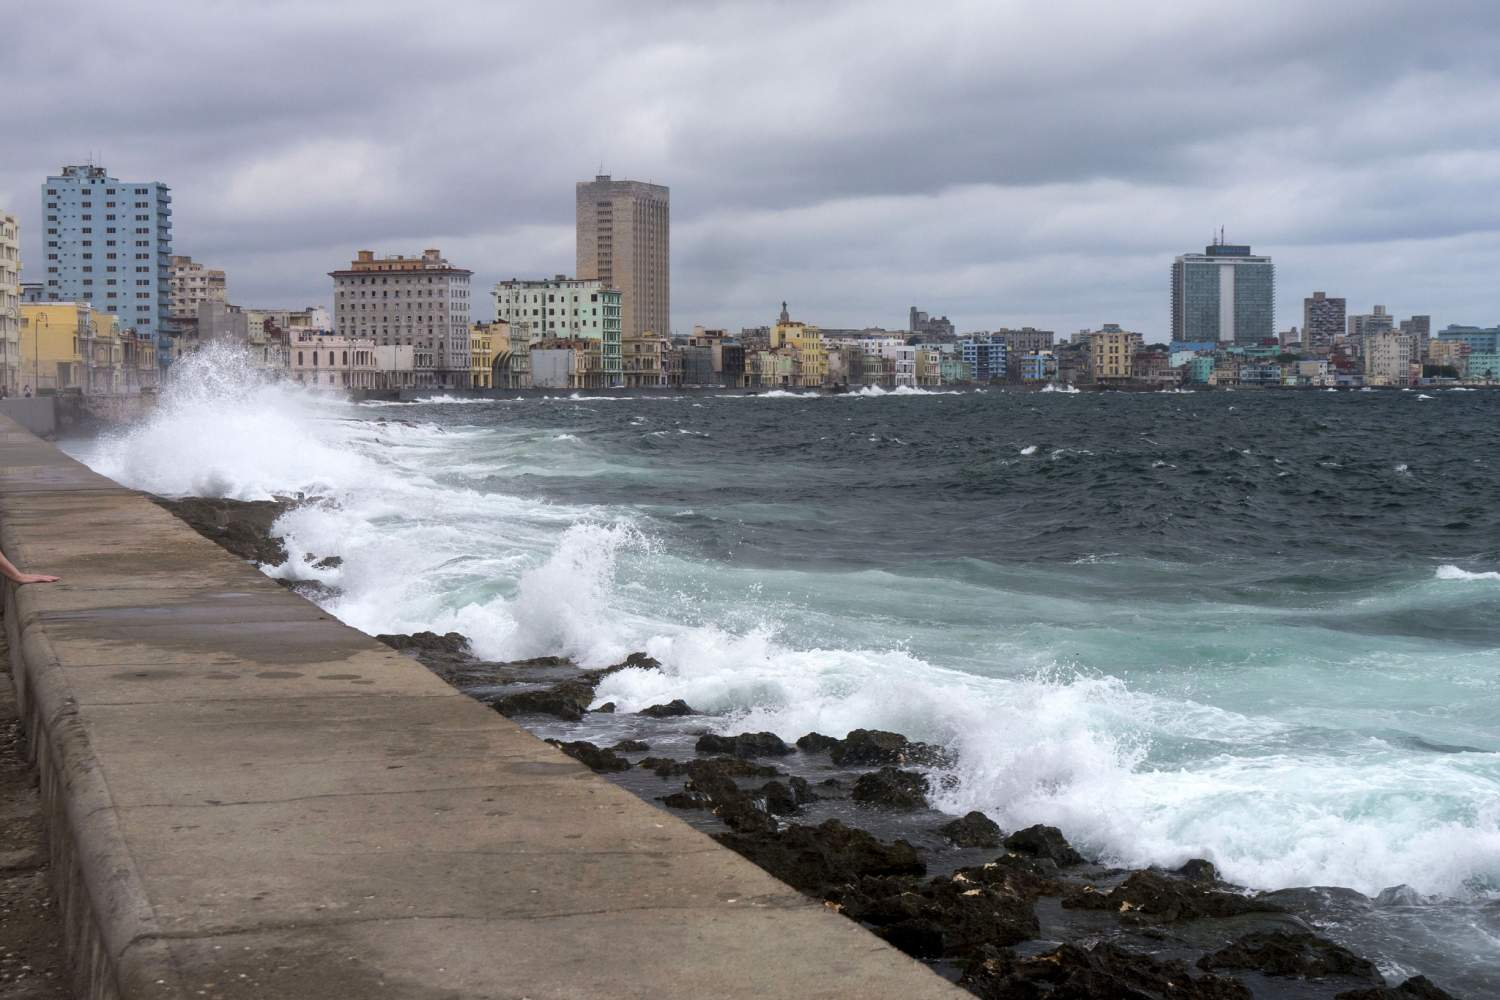 The Malecon, coast of the caribbean sea in Havana